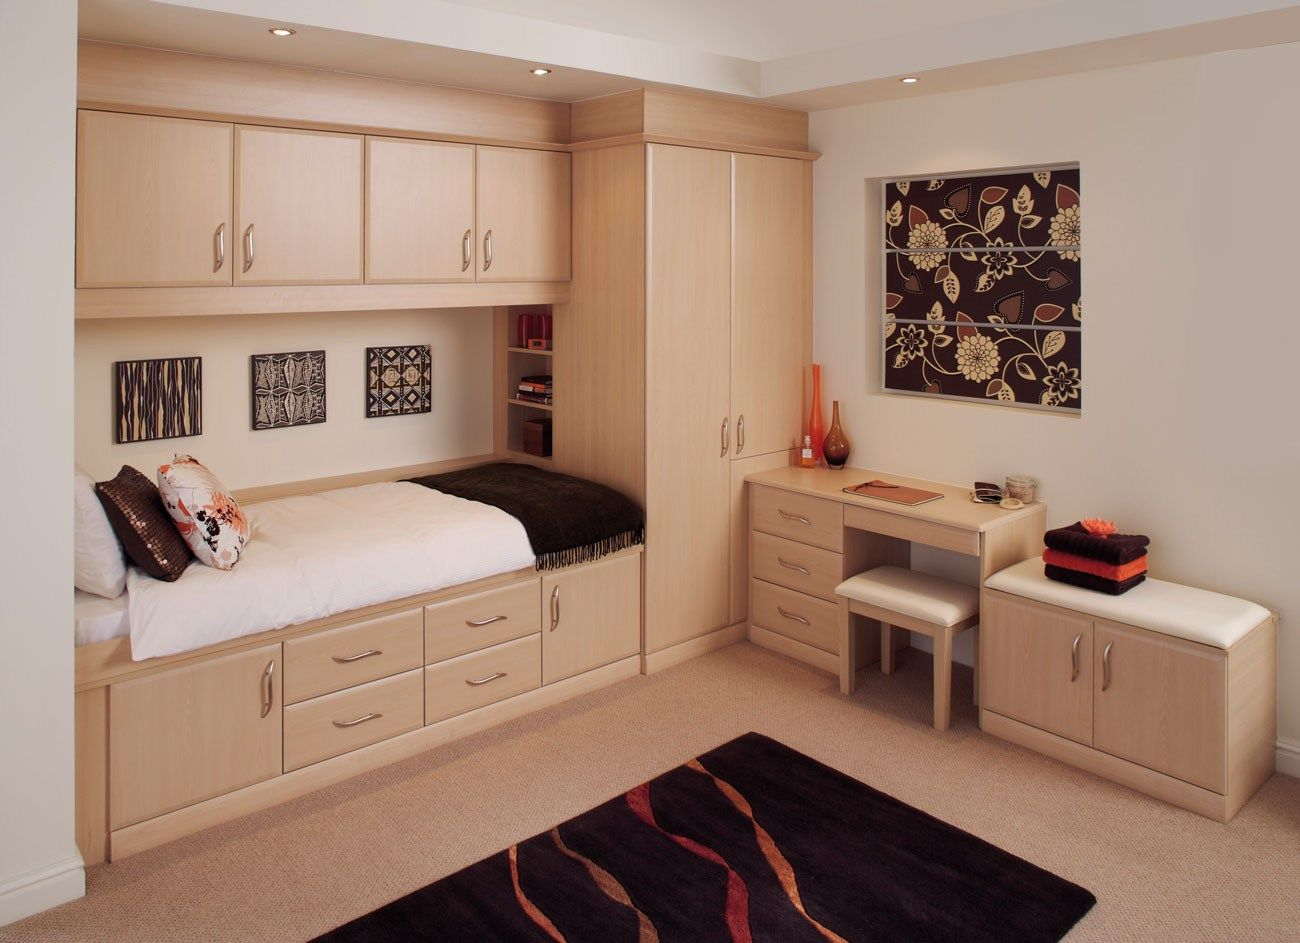 Best Marvelous Fitted Bedroom Hpd313 Fitted Wardrobes Al 640 x 480